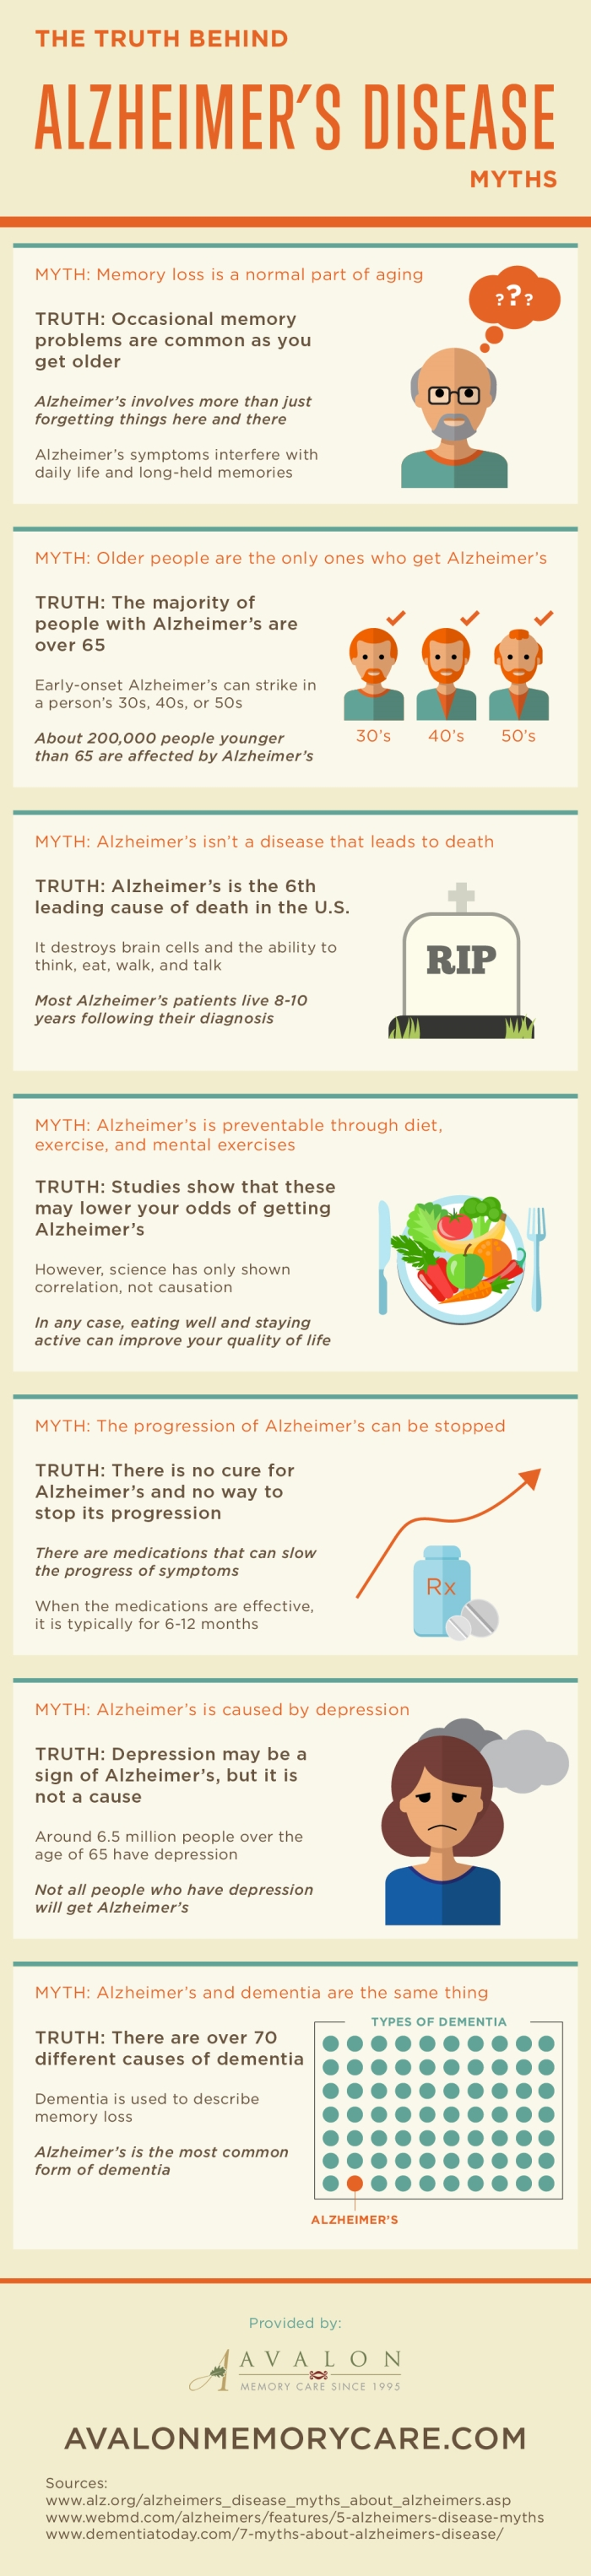 Debunking Myths: What You Know About Alzheimer's Disease May Be False Infographic